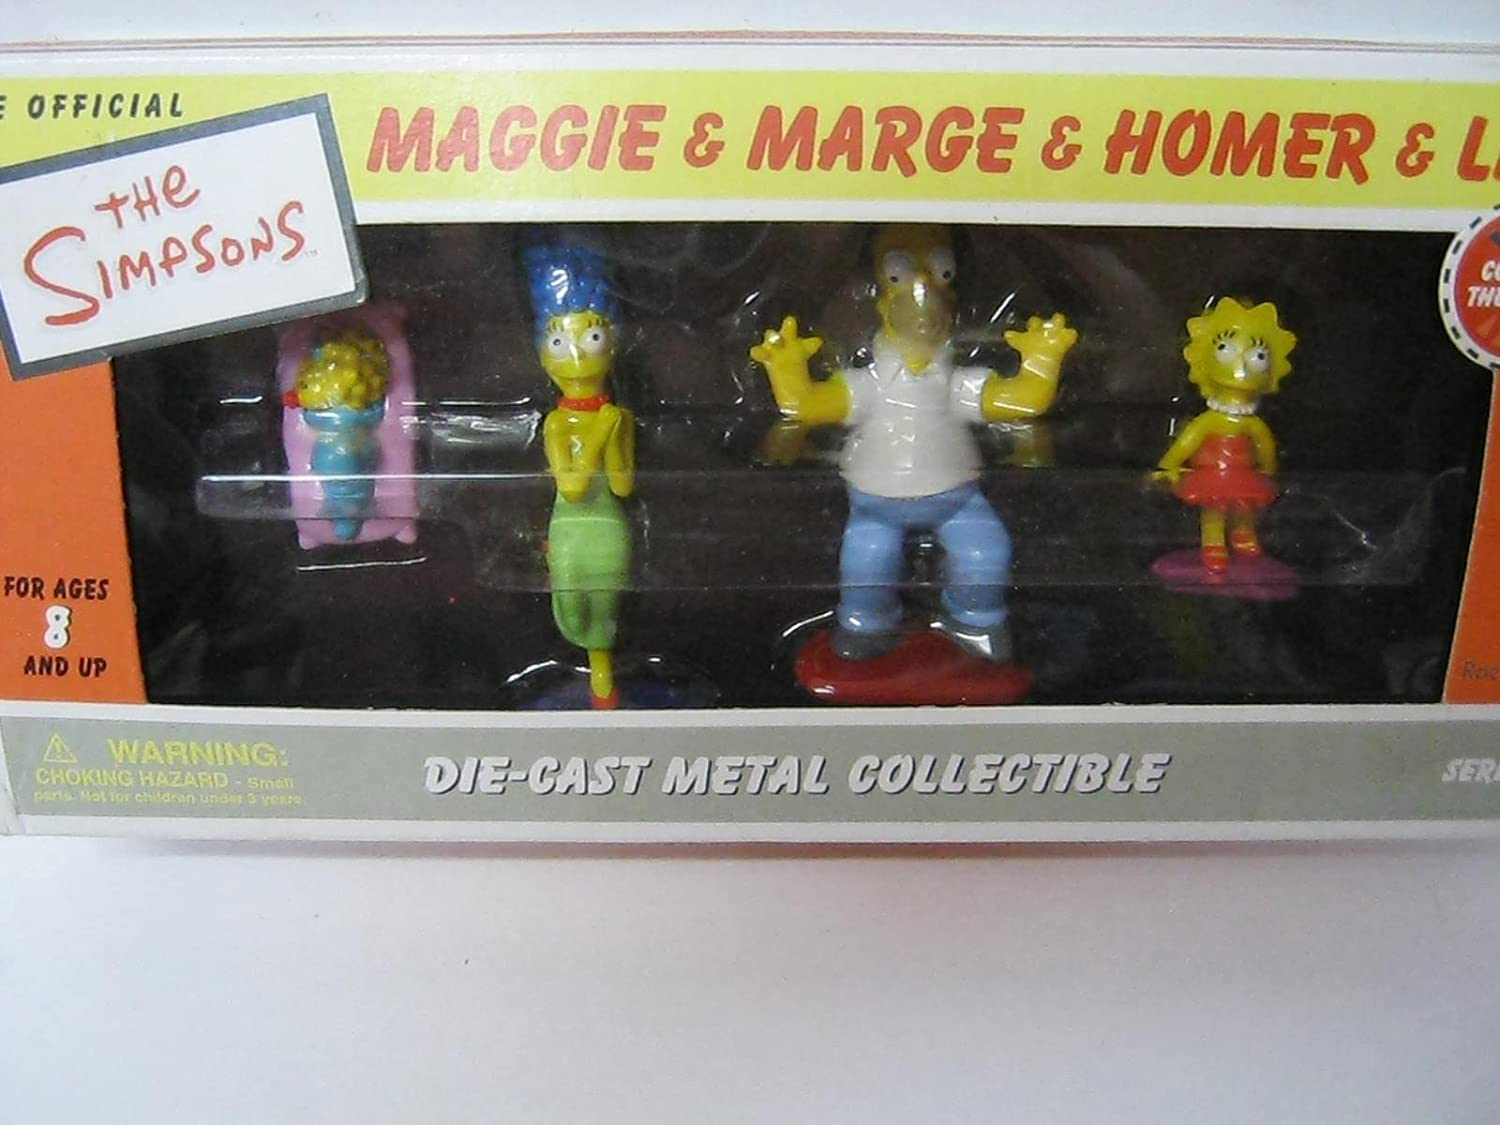 Amazon Com The Simpsons Die Cast Metal Collectible Playset Maggie Marge Homer Lisa Toys Games The show centers on a tween fly named maggie pesky, who lives in the town of stickyfeet and dreams of becoming a rock star. the simpsons die cast metal collectible